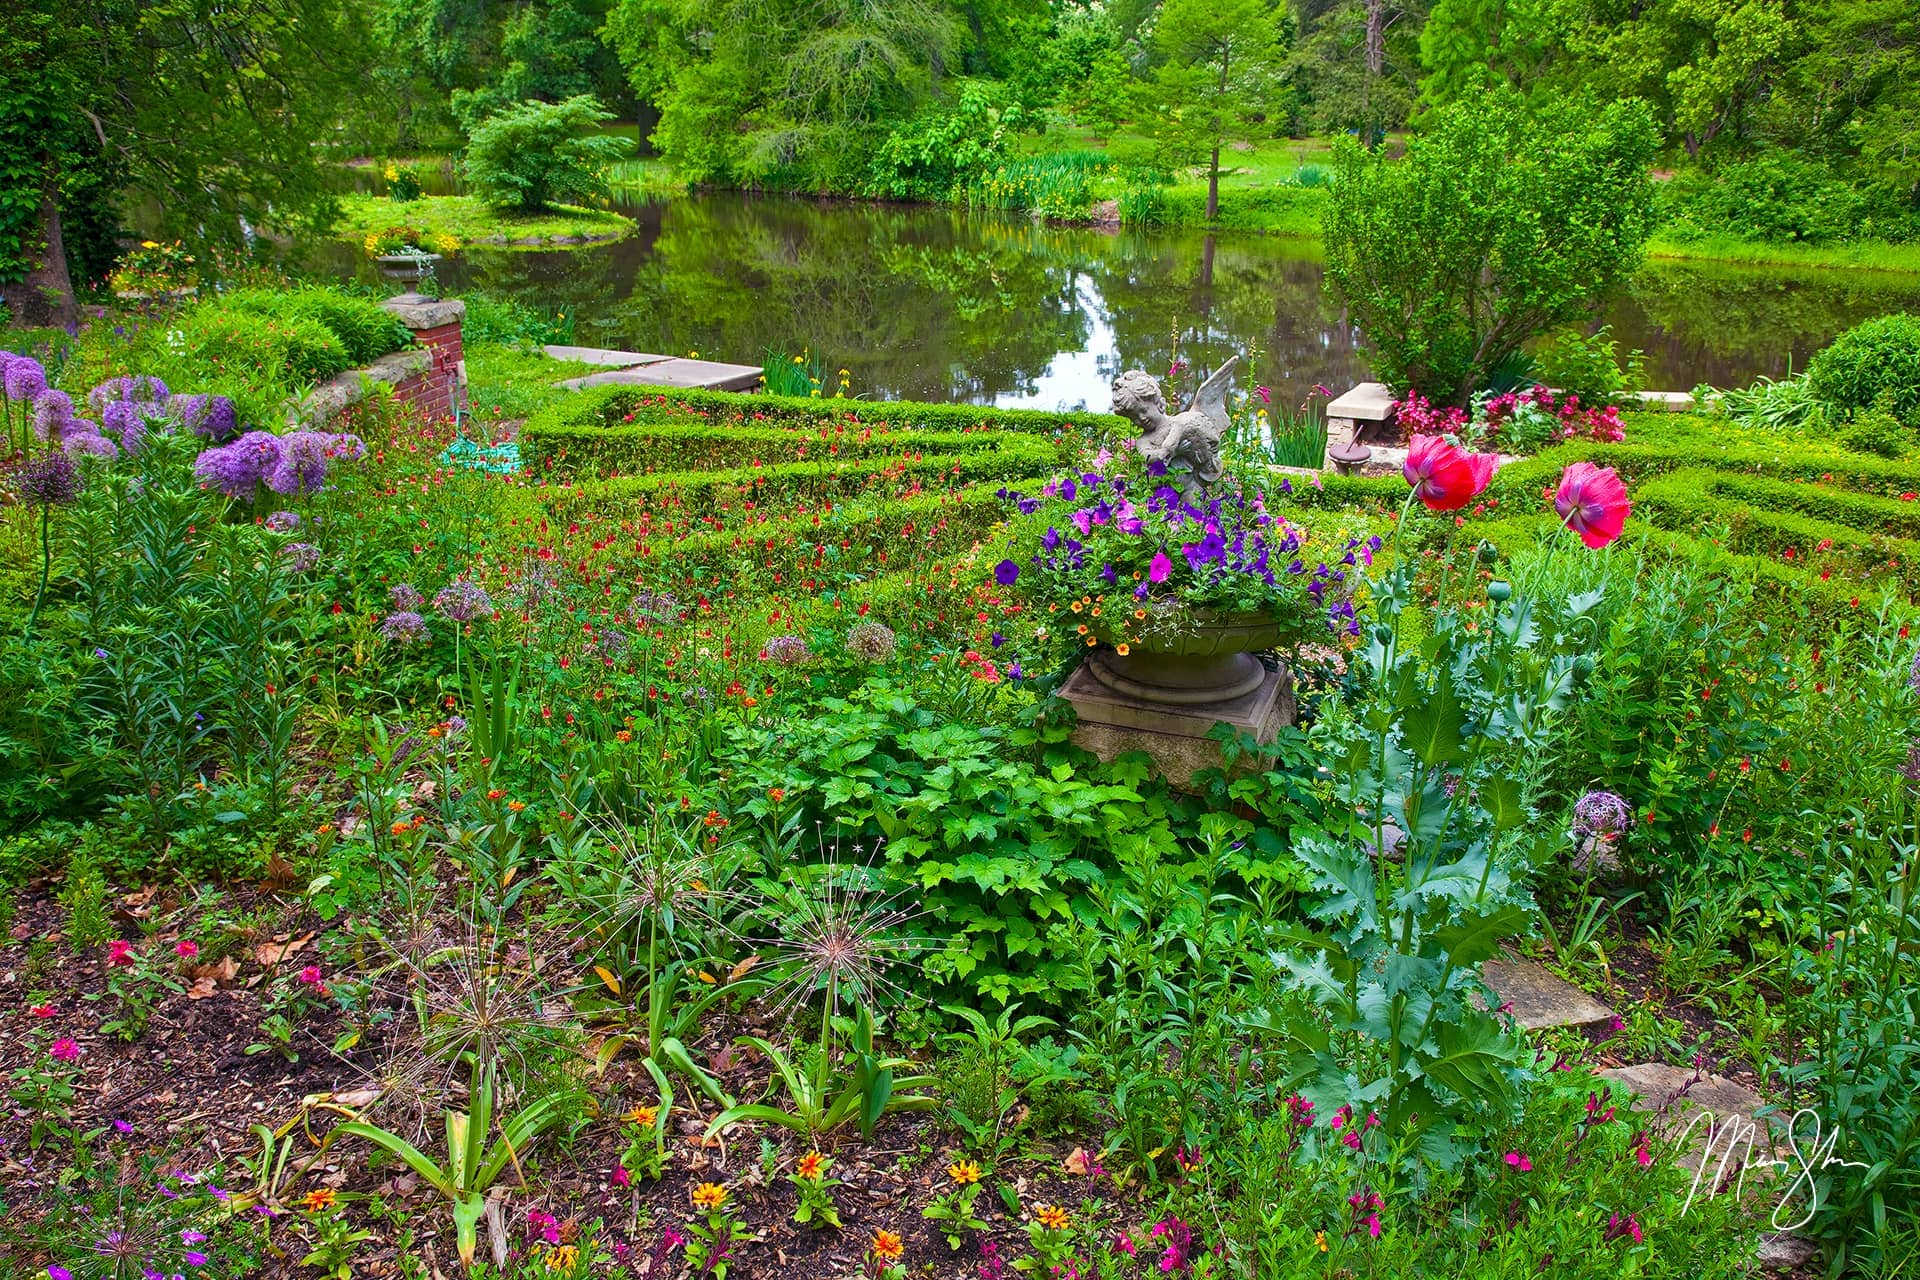 Open edition fine art print of Gardens of Bartlett Arboretum from Mickey Shannon Photography. Location: Bartlett Arboretum, Belle Plaine, Kansas